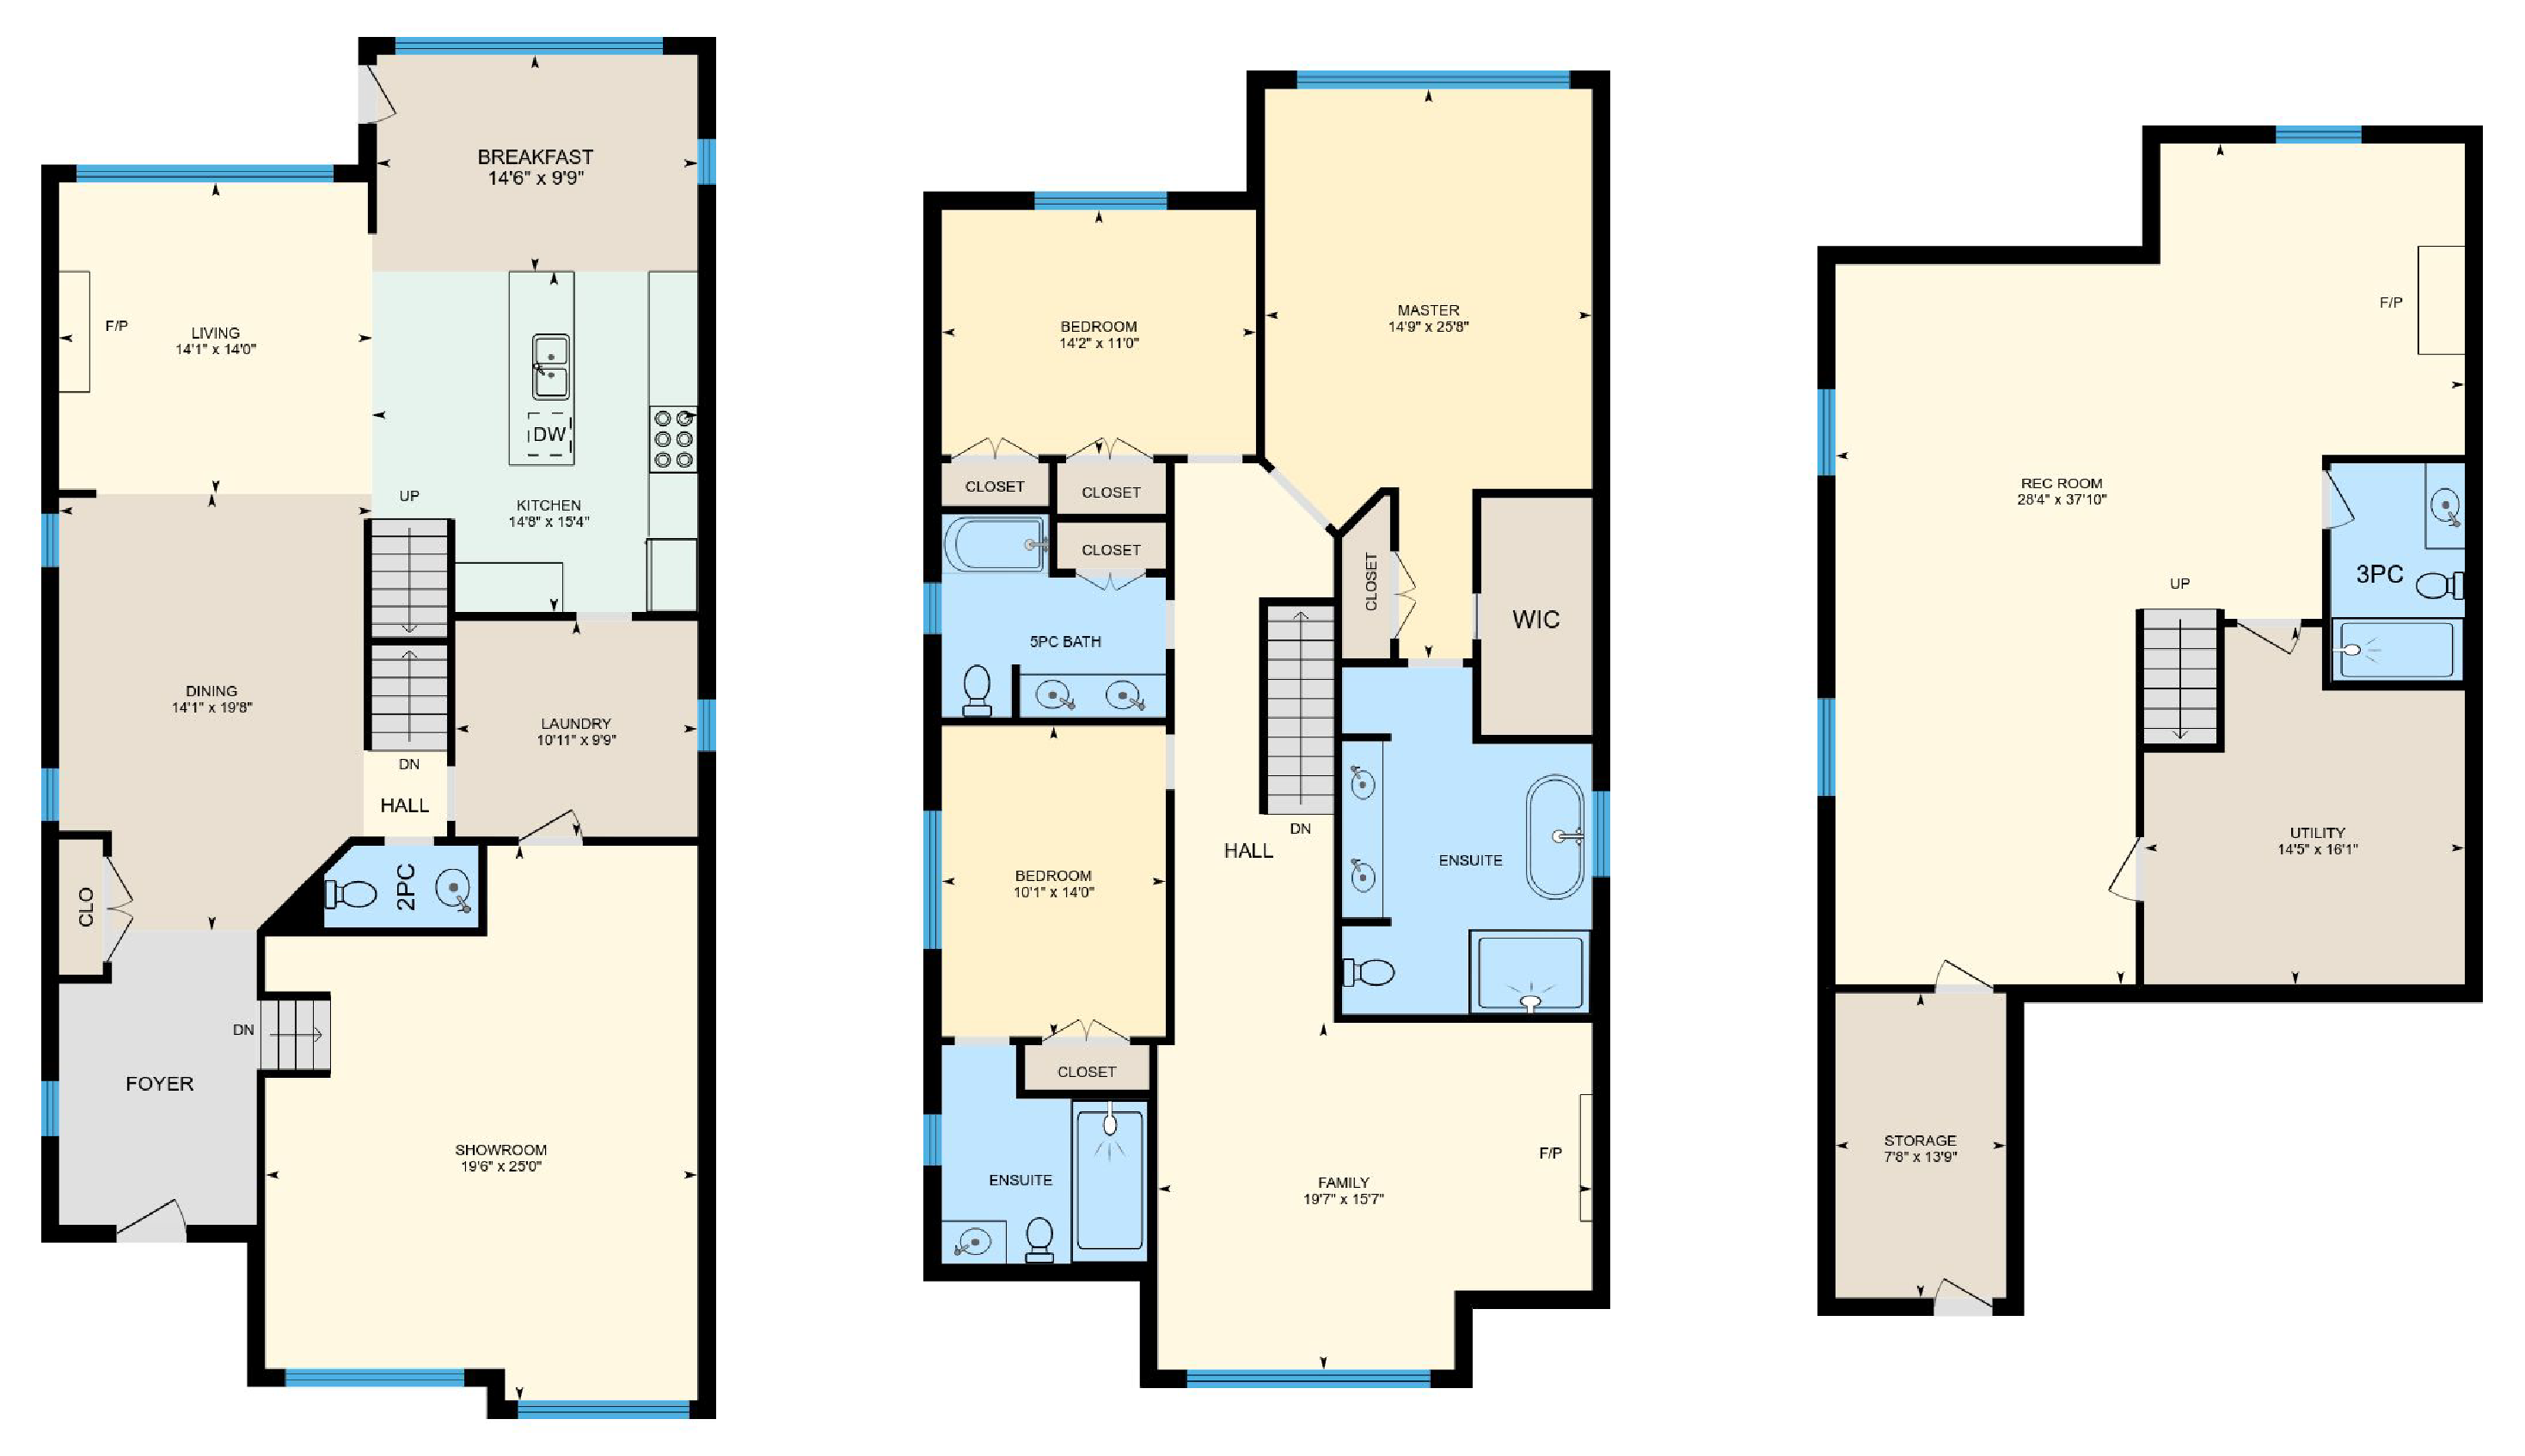 iGuide Multicolored Balanced Floor Plan Colors - Square Feet Photography and Floor Plans